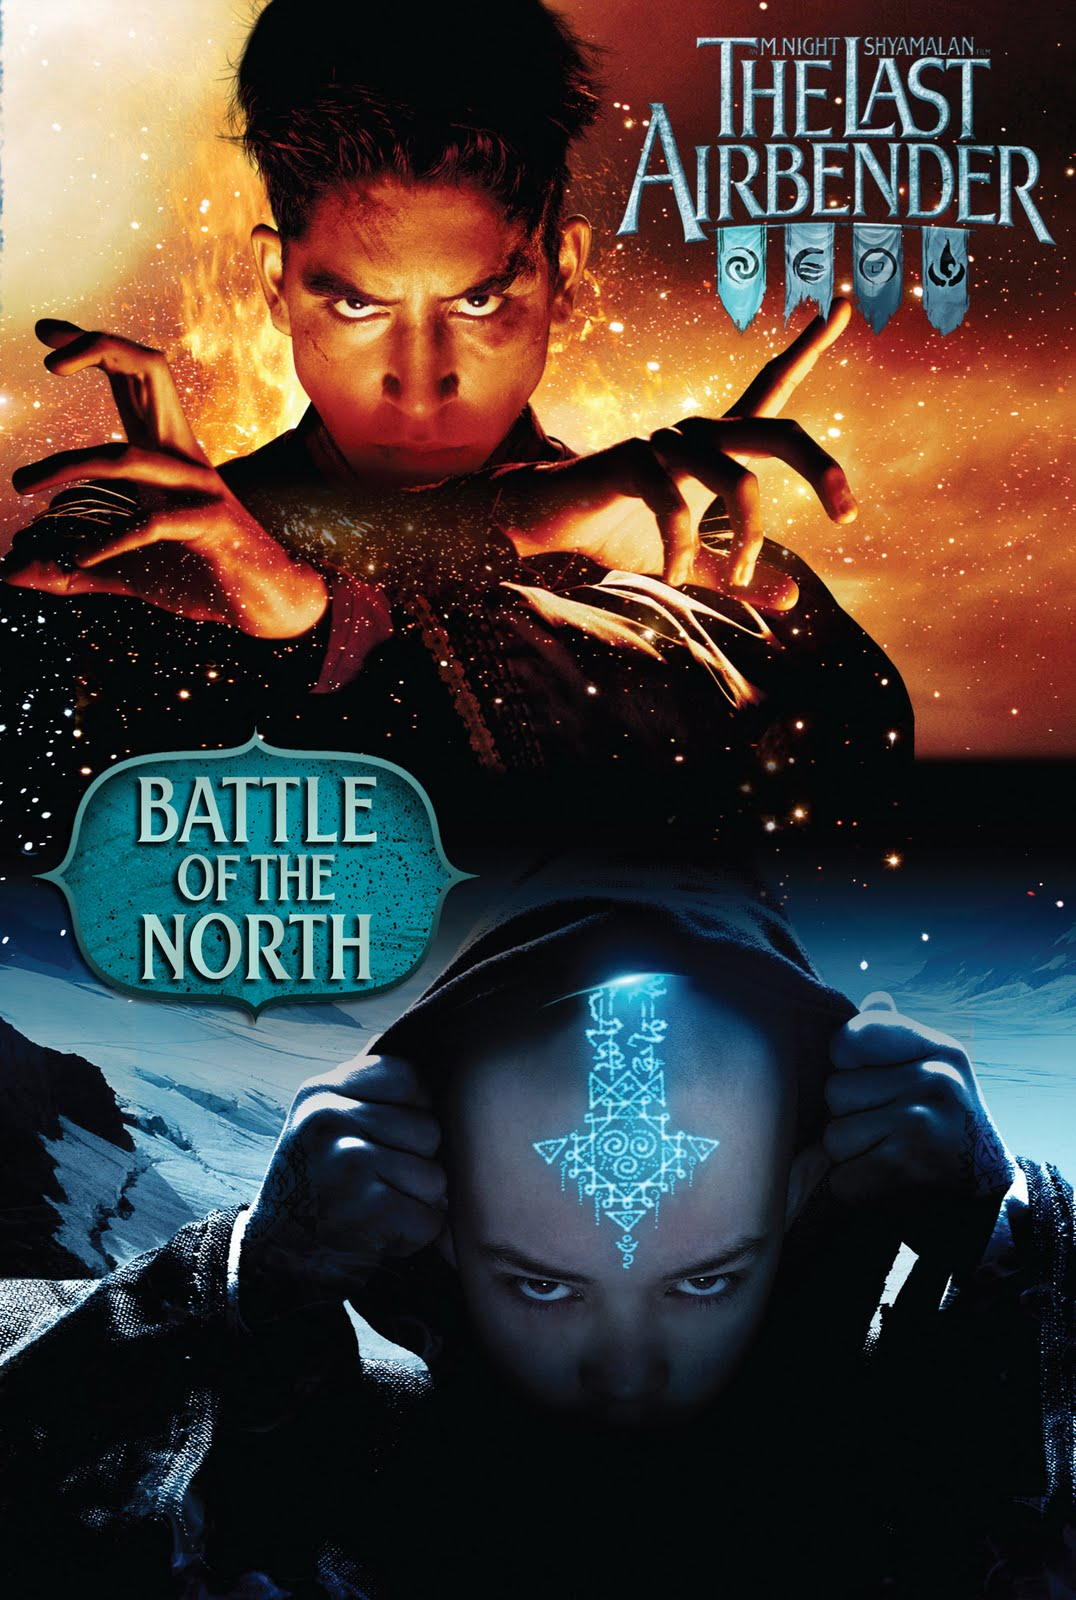 Full Movie The Last Airbender Full Movie HD